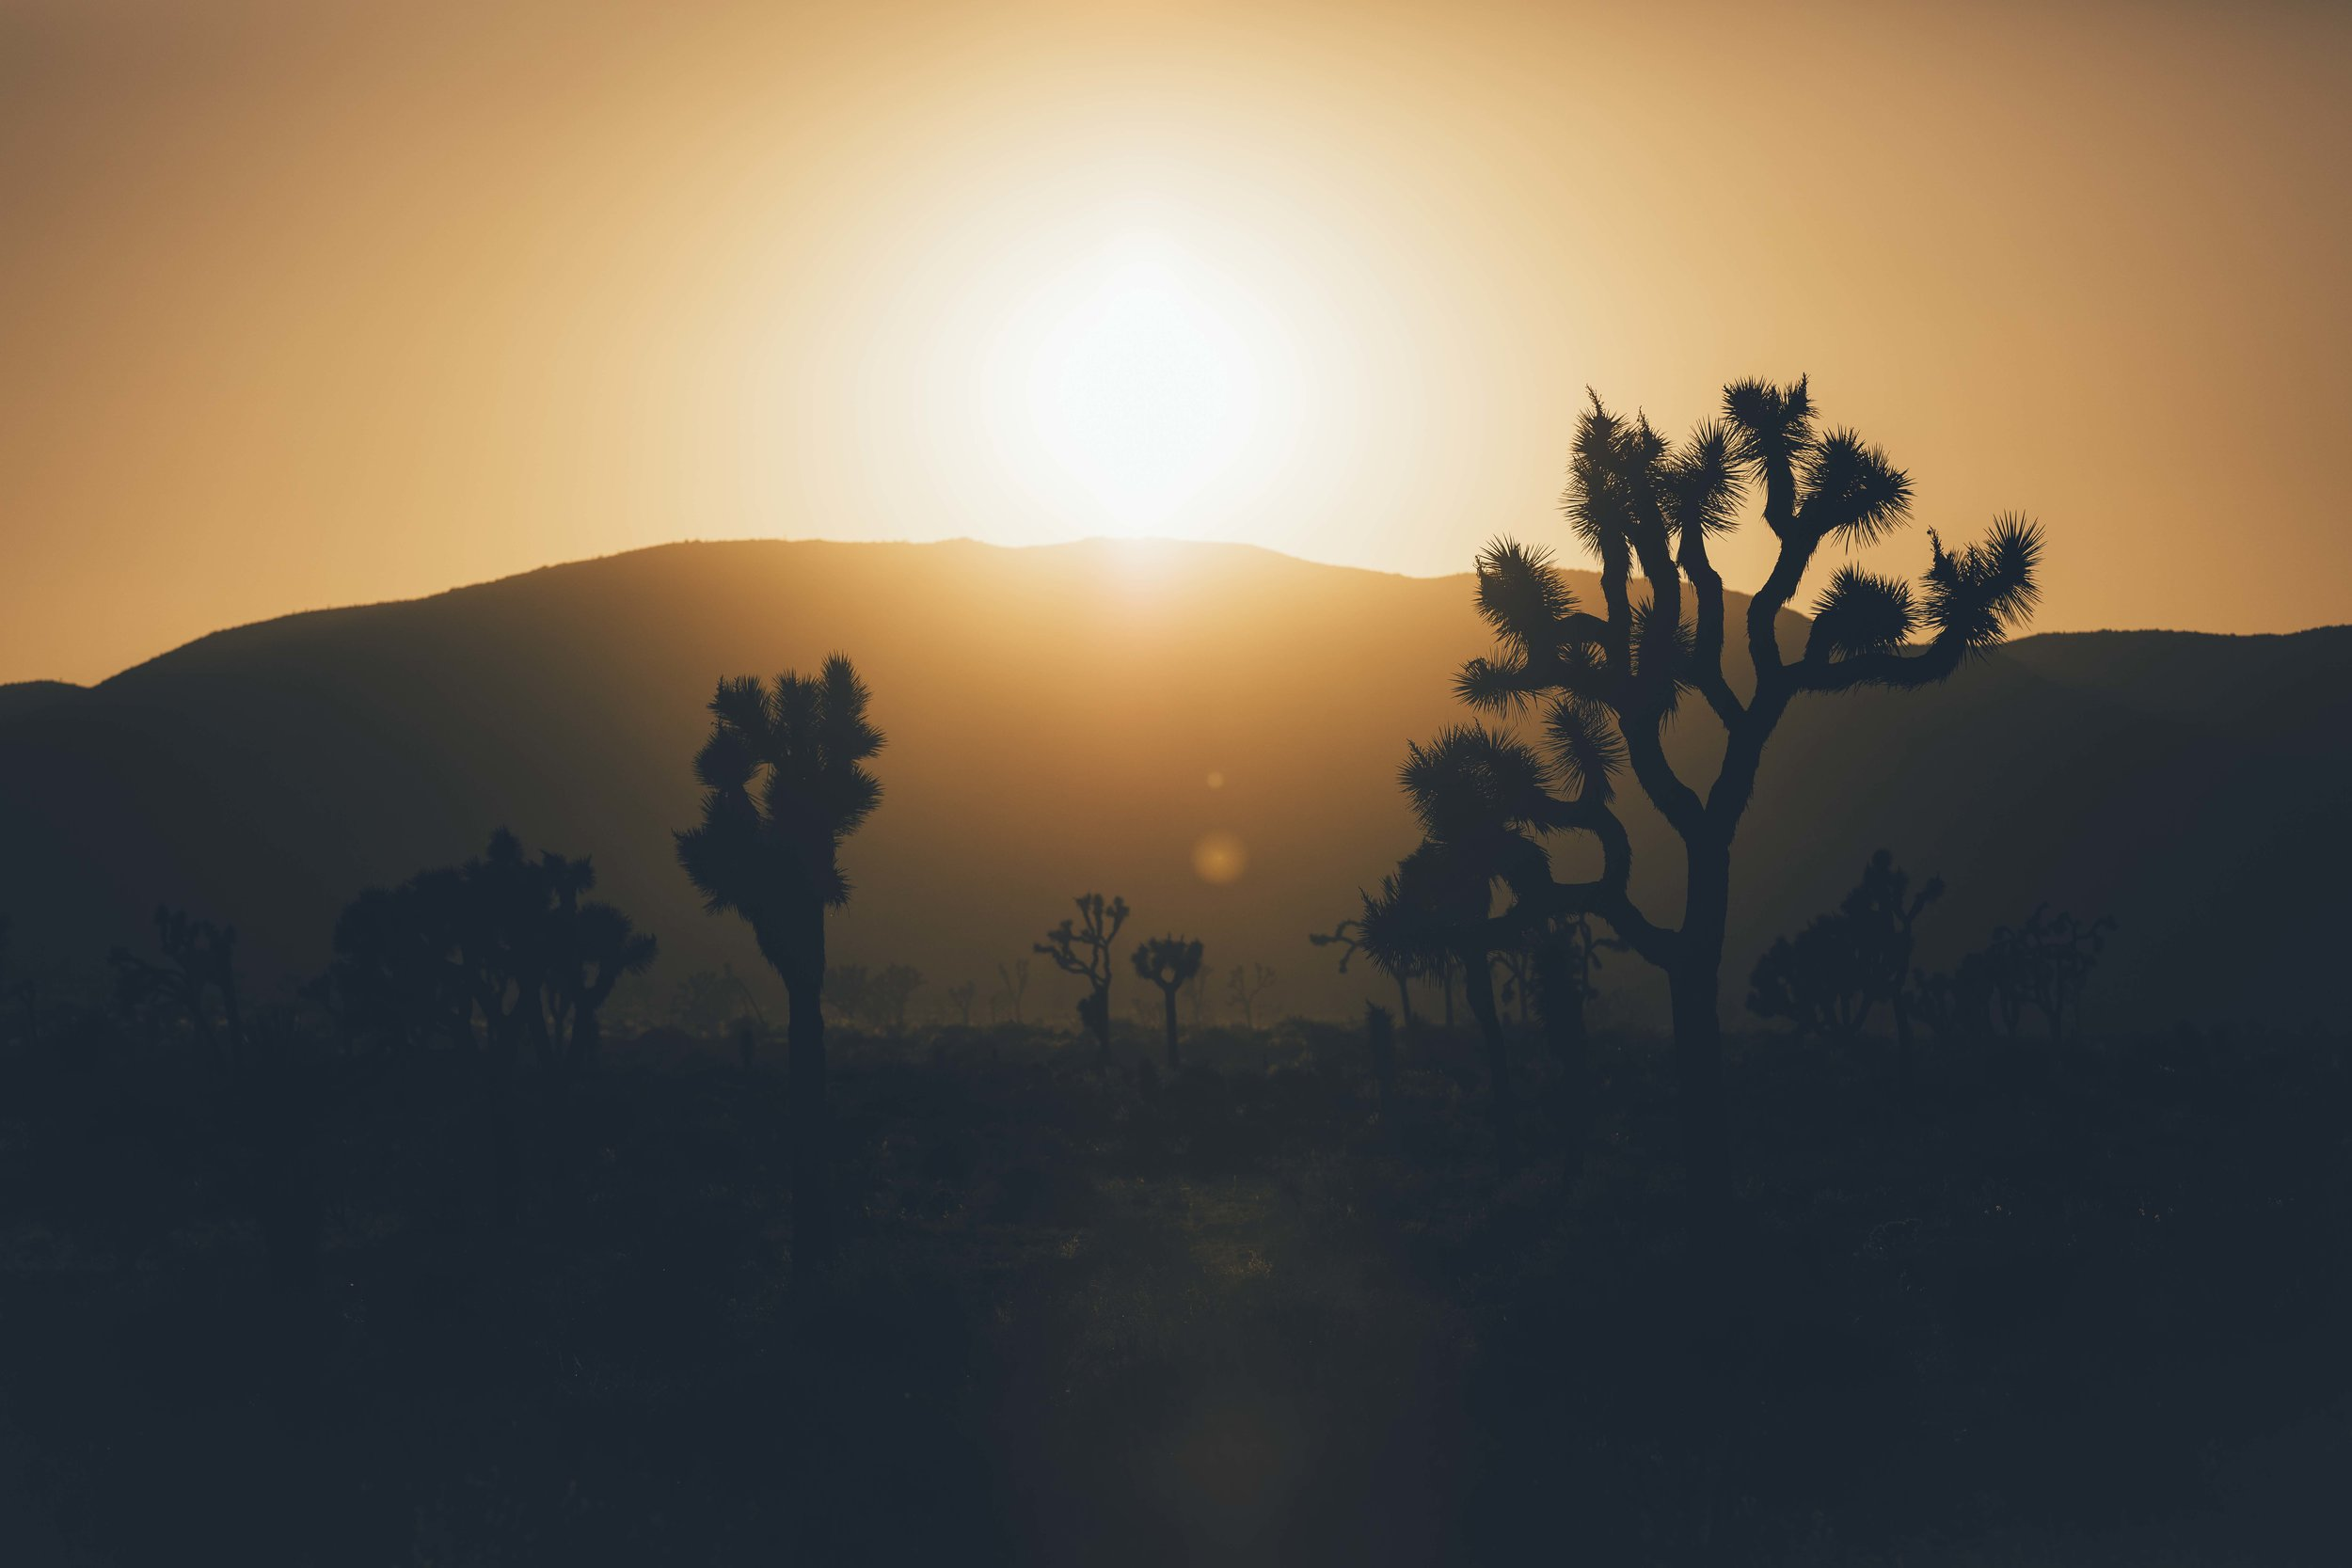 Joshua Tree | California - An alien landscape deep in the Mojave Desert